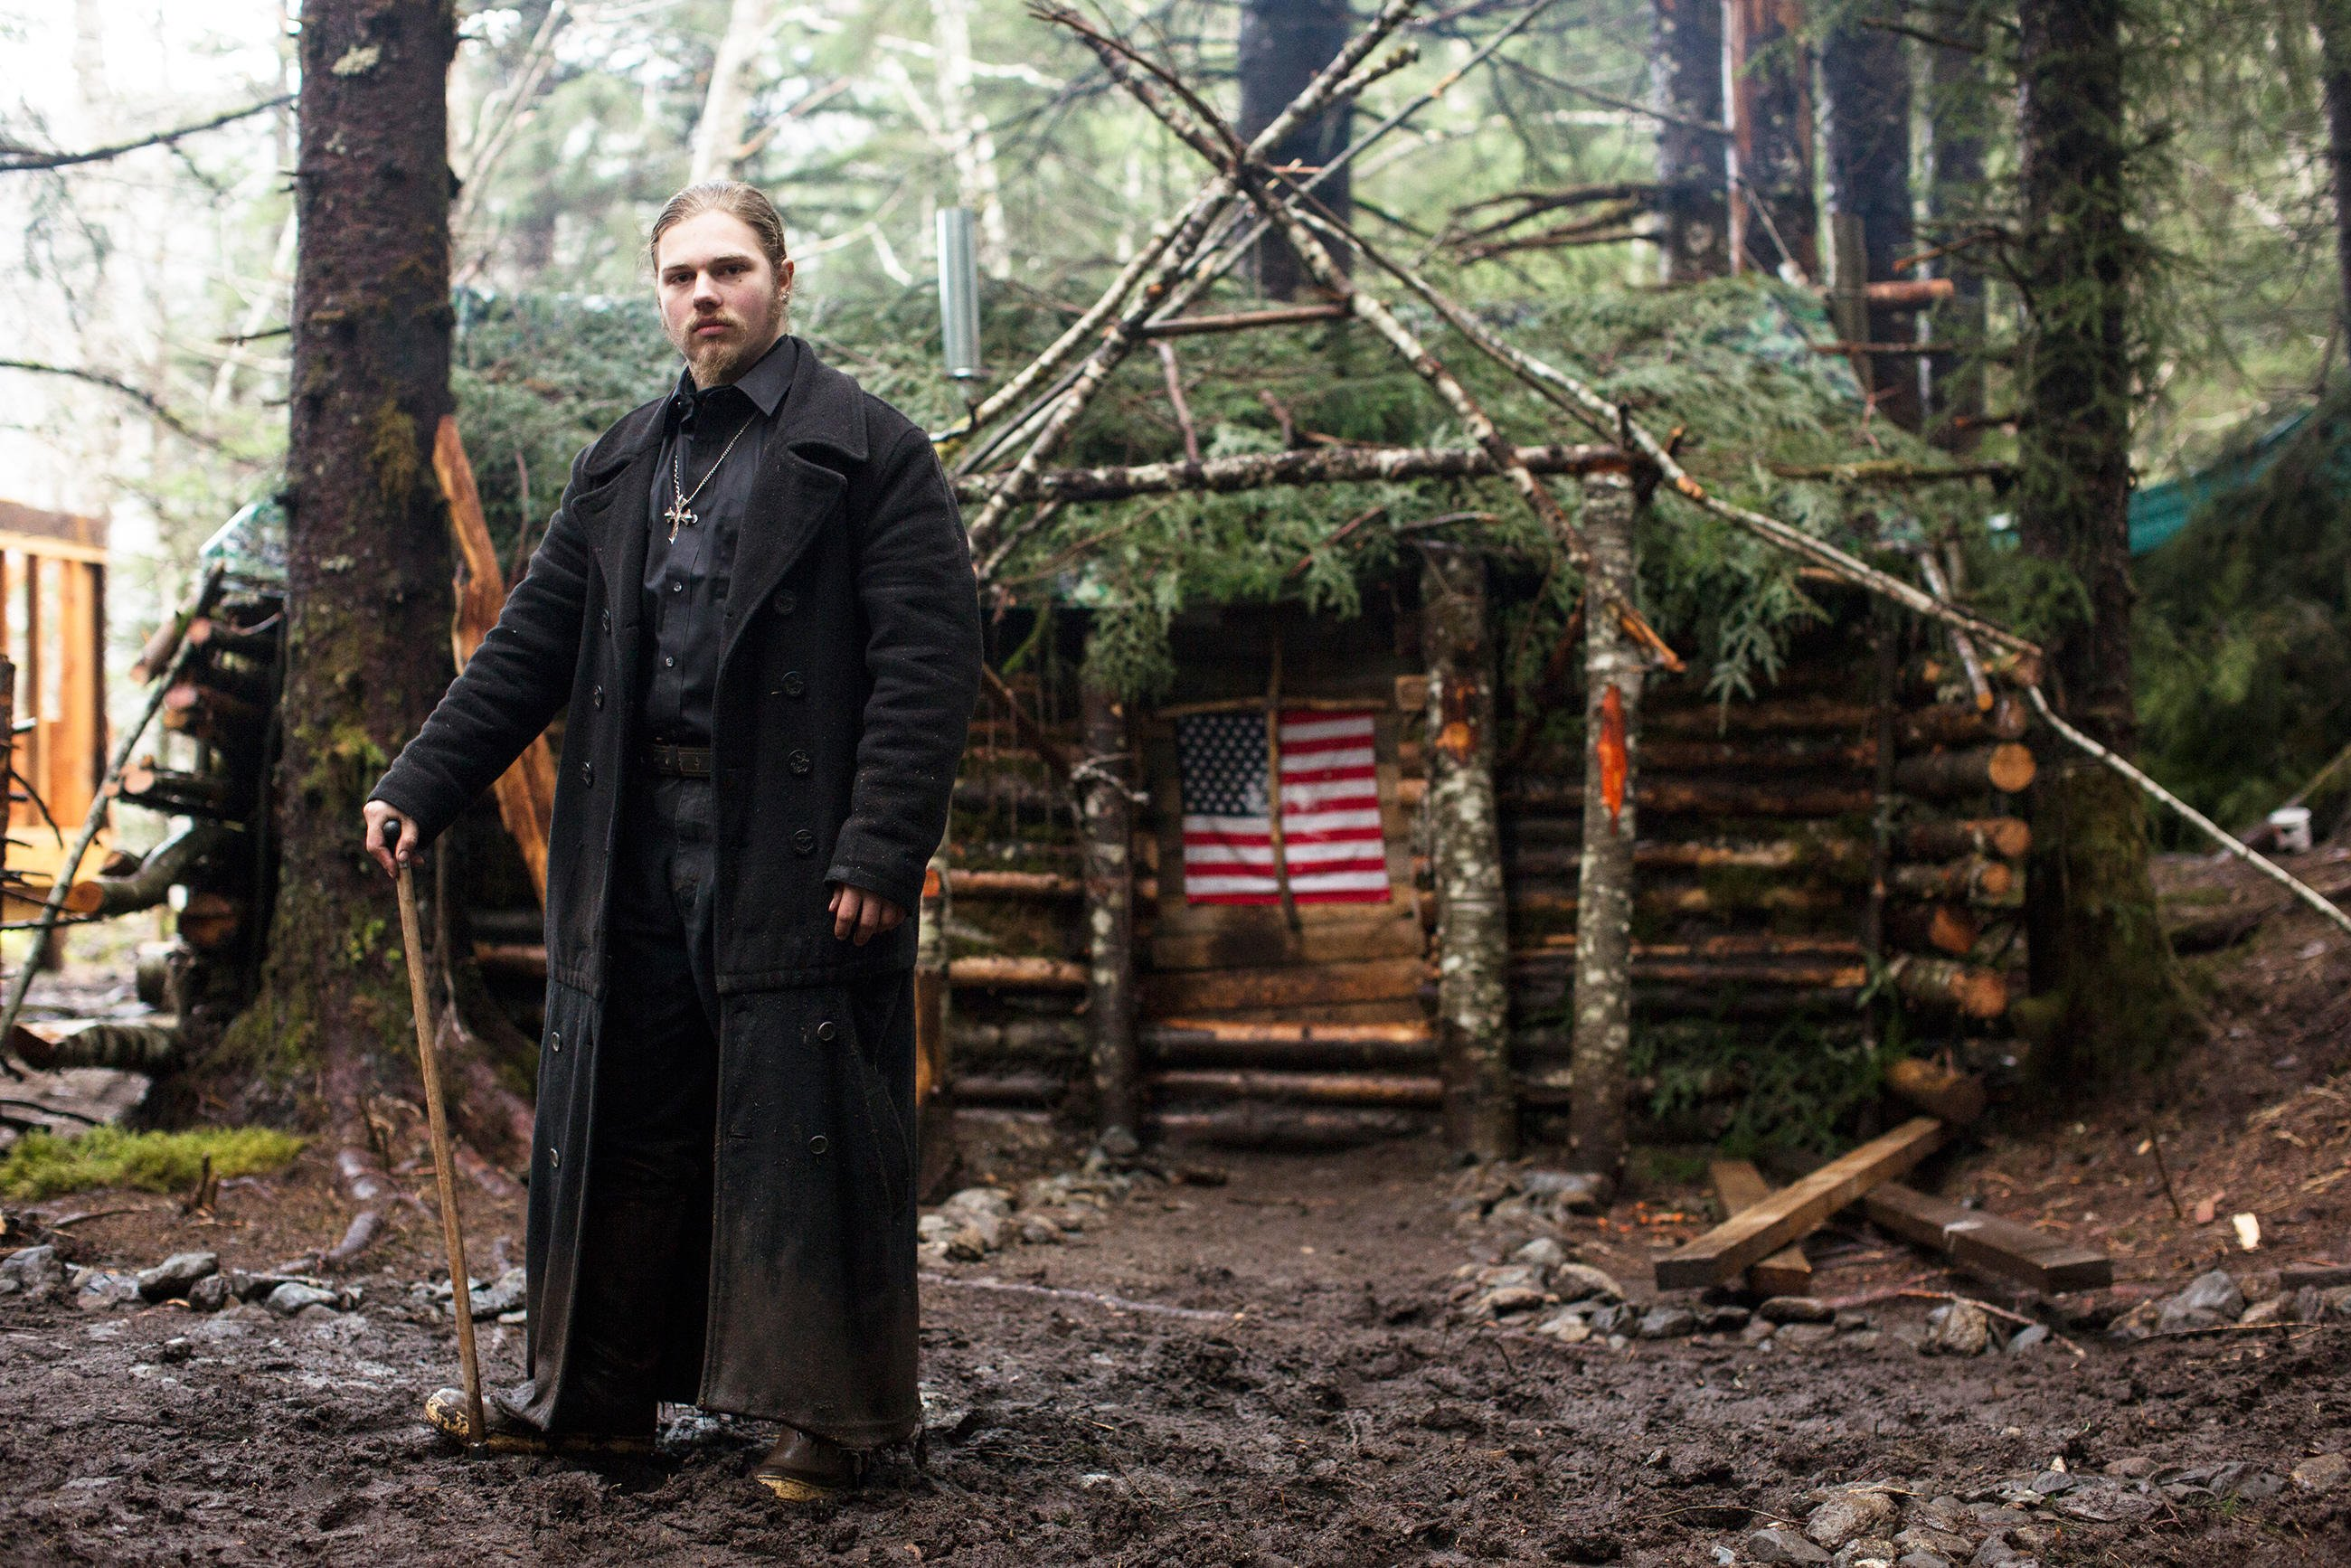 Noah Brown holding a stick in front of a hut wearing a black coat